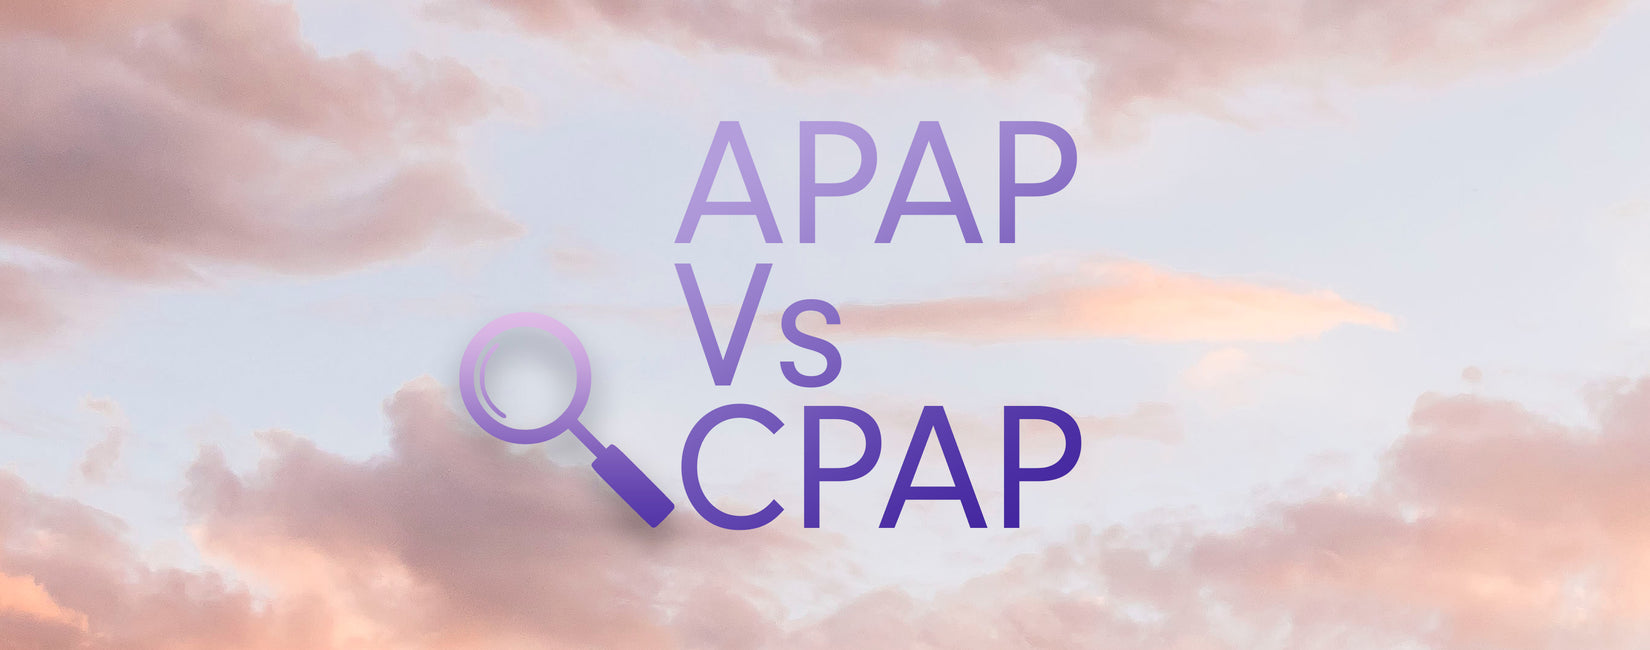 APAP vs CPAP: Which One Should You Choose?